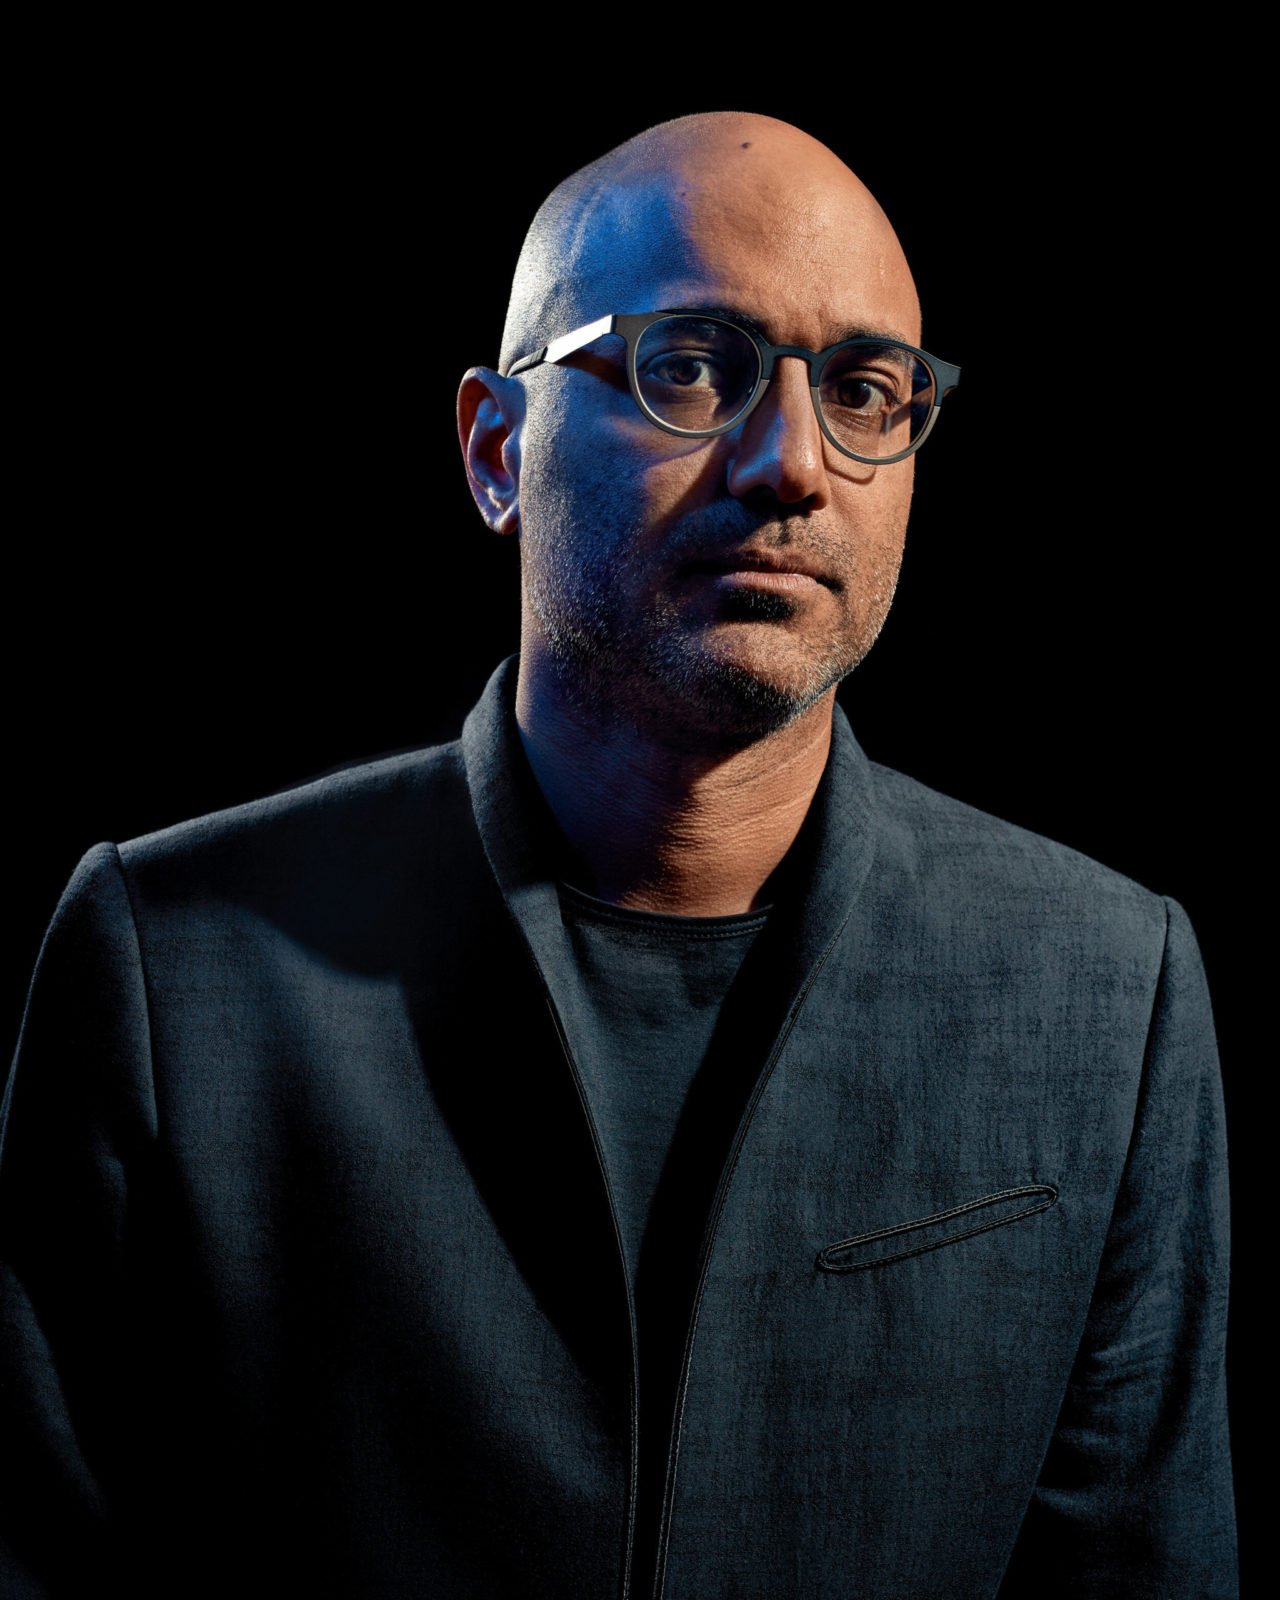 New York, NY - August 7th, 2017: Ayad Akhtar posing for a portrait in New York.